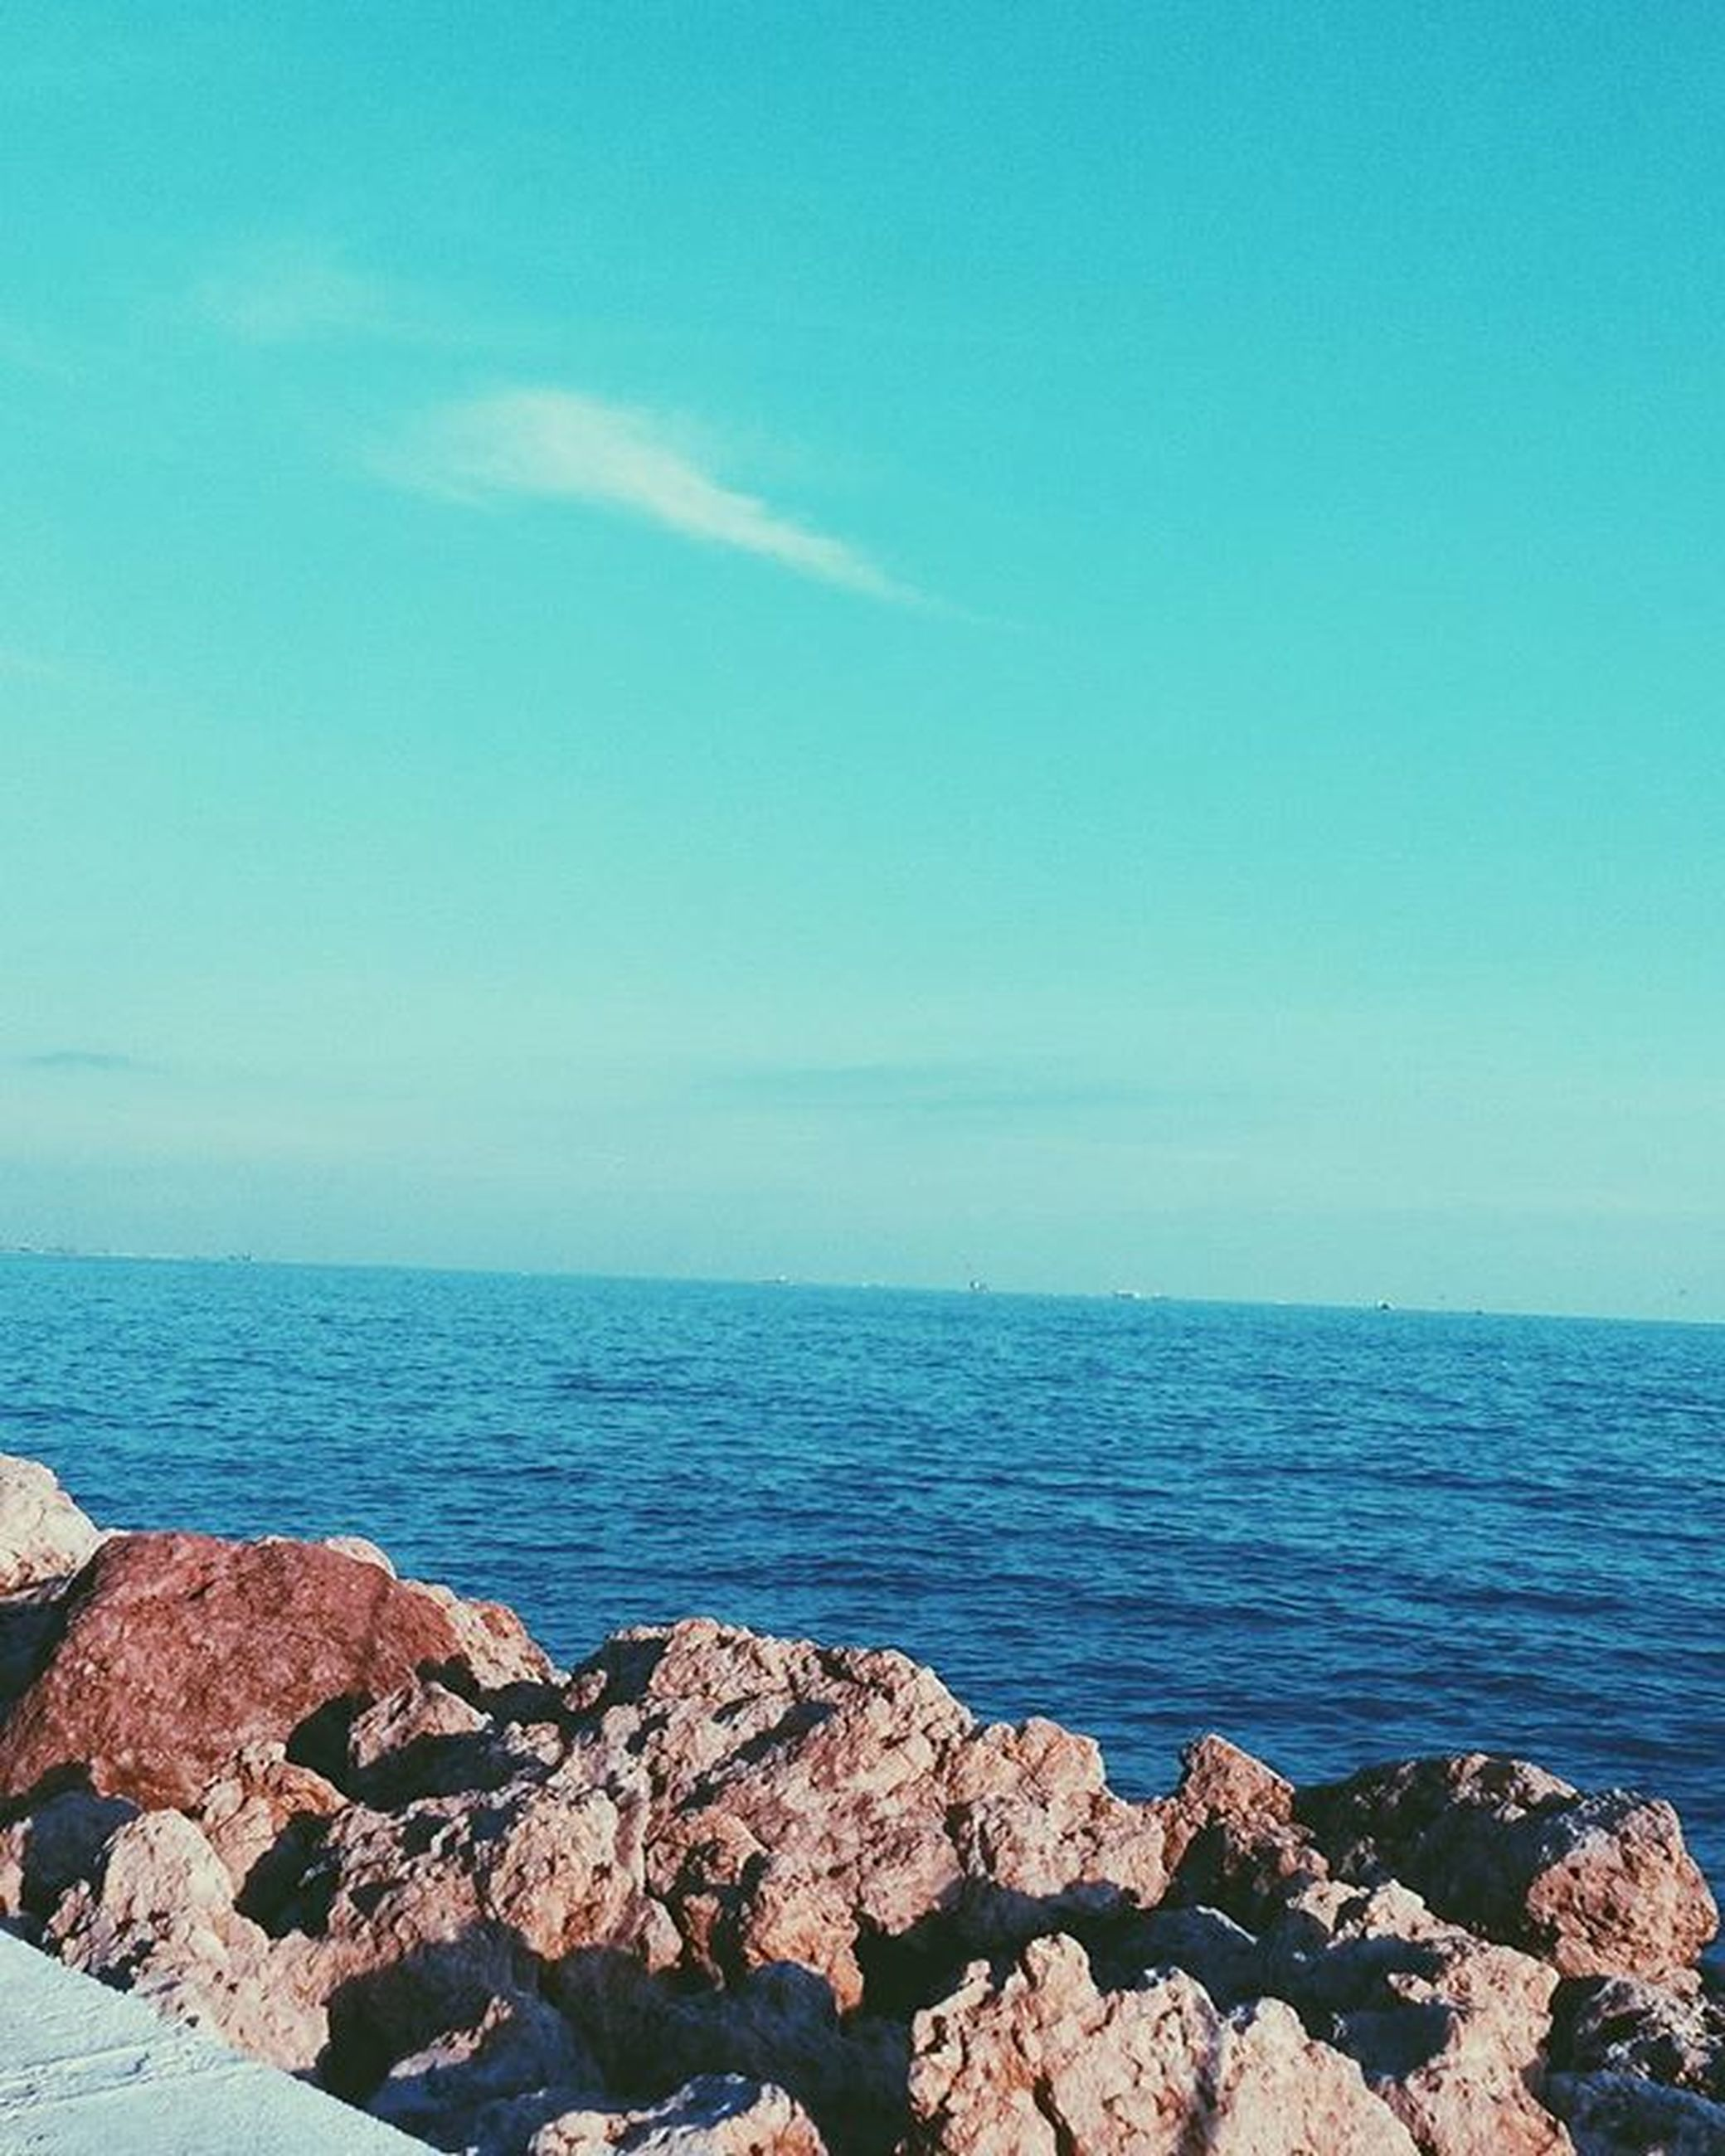 sea, horizon over water, water, scenics, tranquil scene, blue, tranquility, rock - object, beauty in nature, nature, sky, copy space, idyllic, clear sky, rock, shore, rock formation, outdoors, day, beach